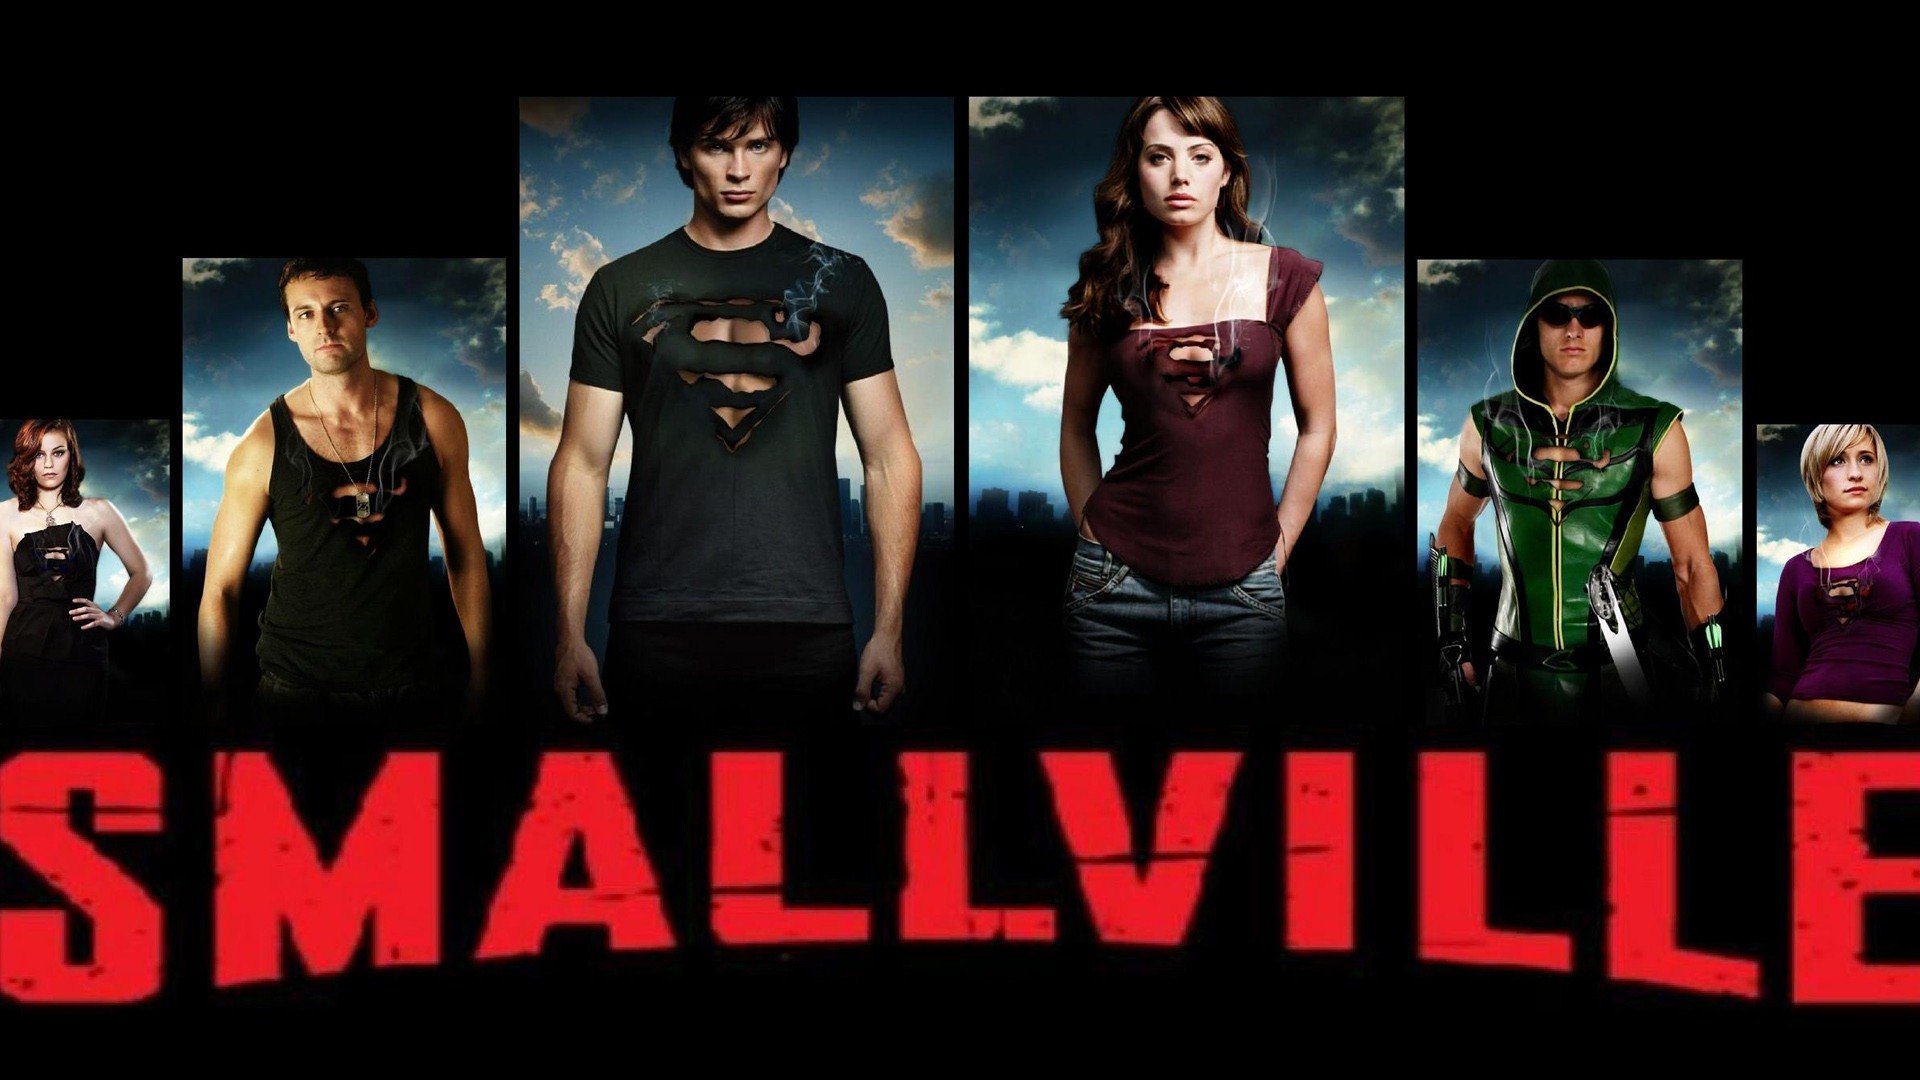 Smallville HD Wallpapers